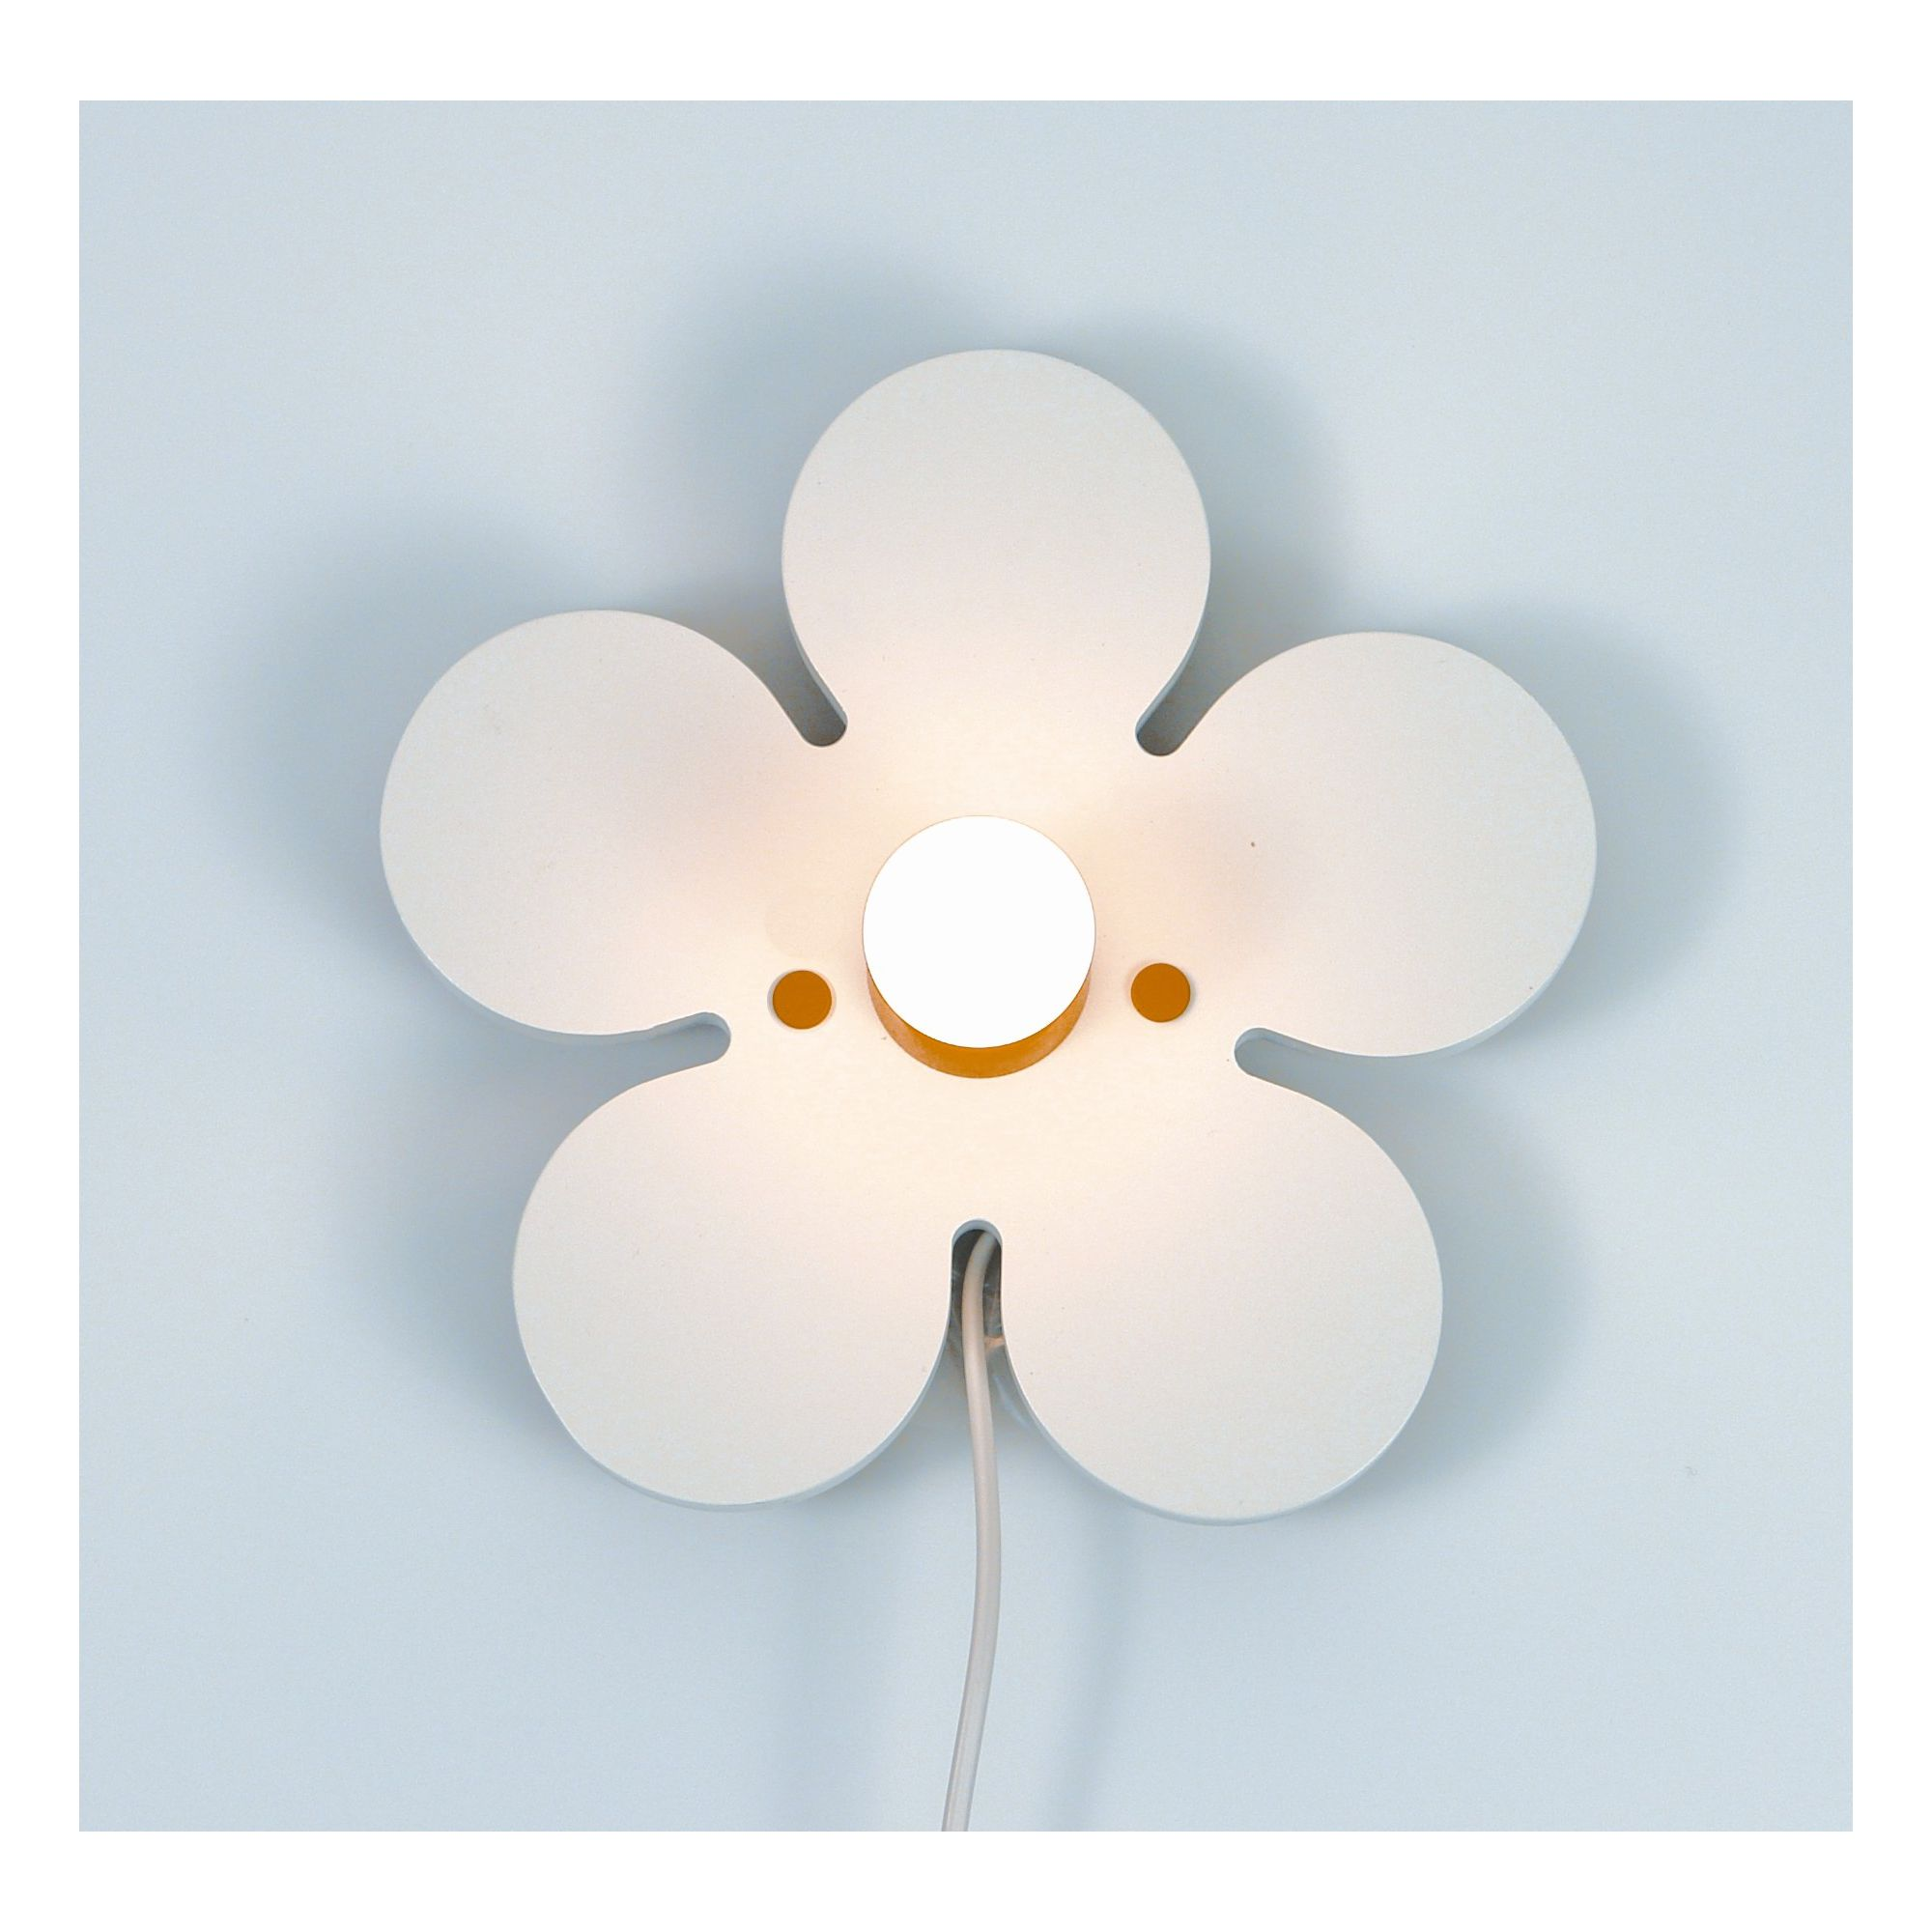 niermann-standby-flower-power-wall-mounted-light